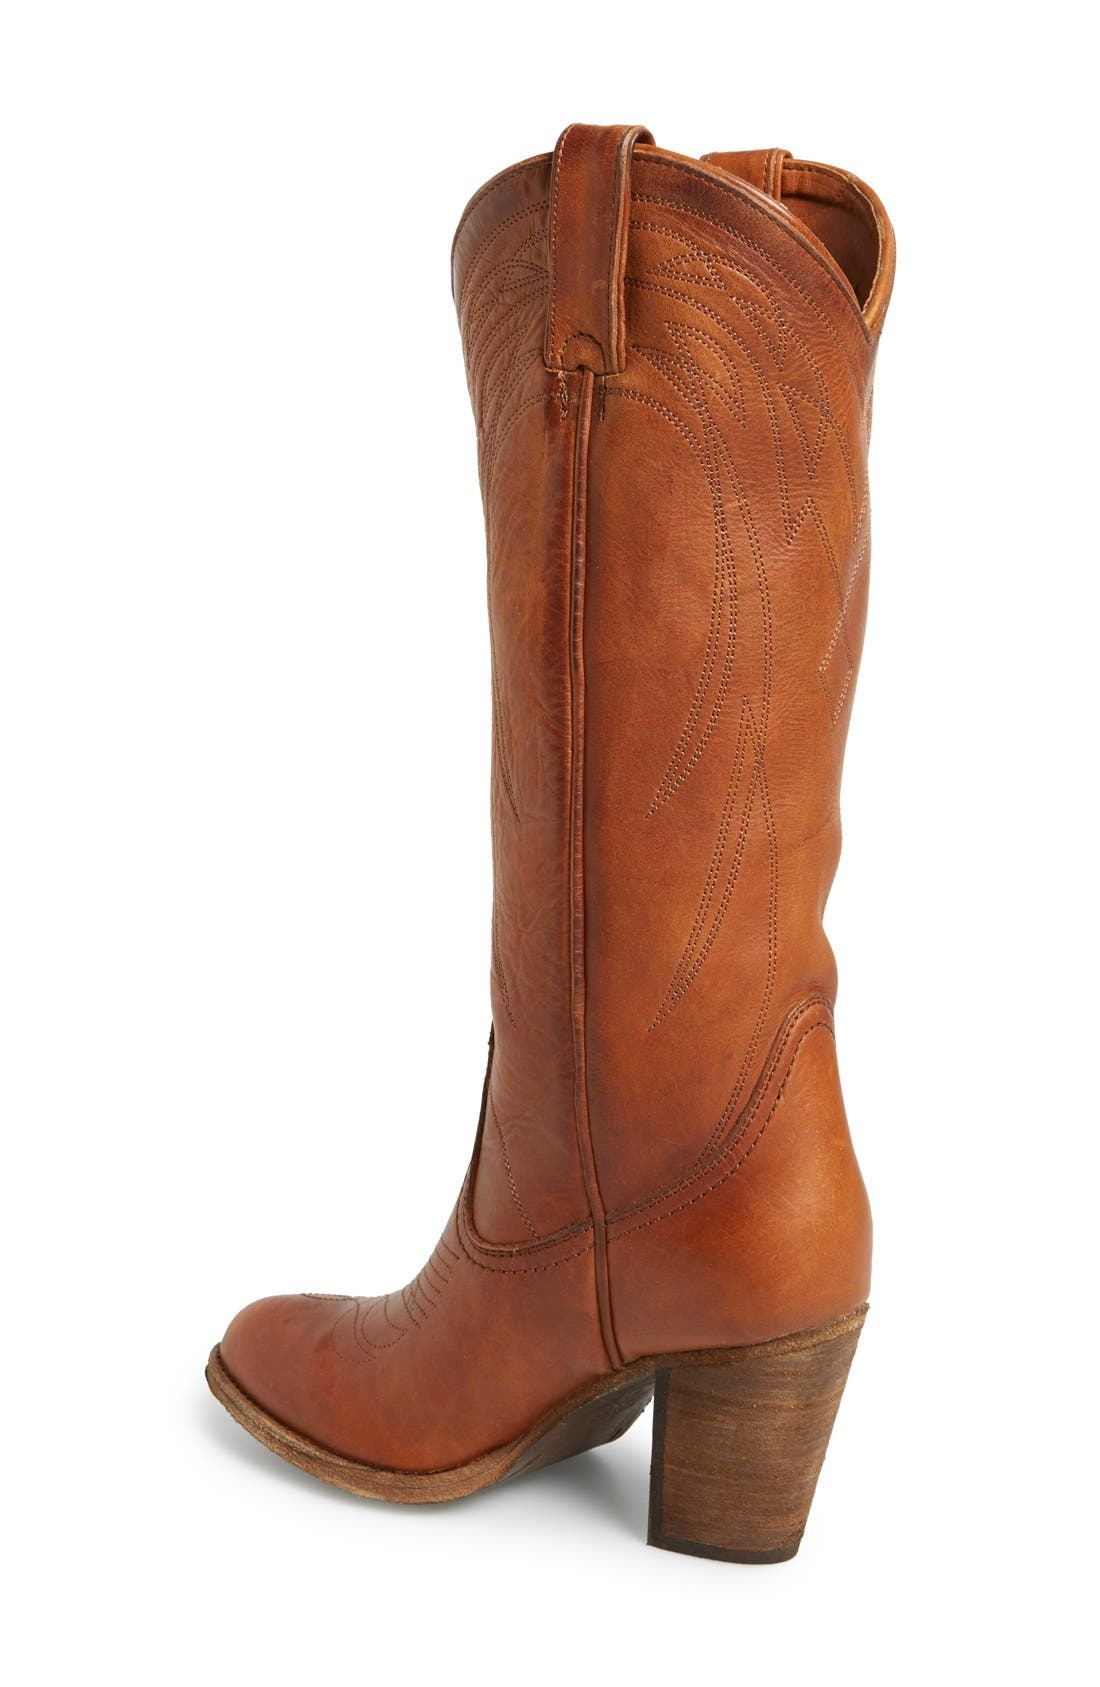 Alternate Image 2  - Frye 'Ilana' Embroidered Leather Western Boot (Women)